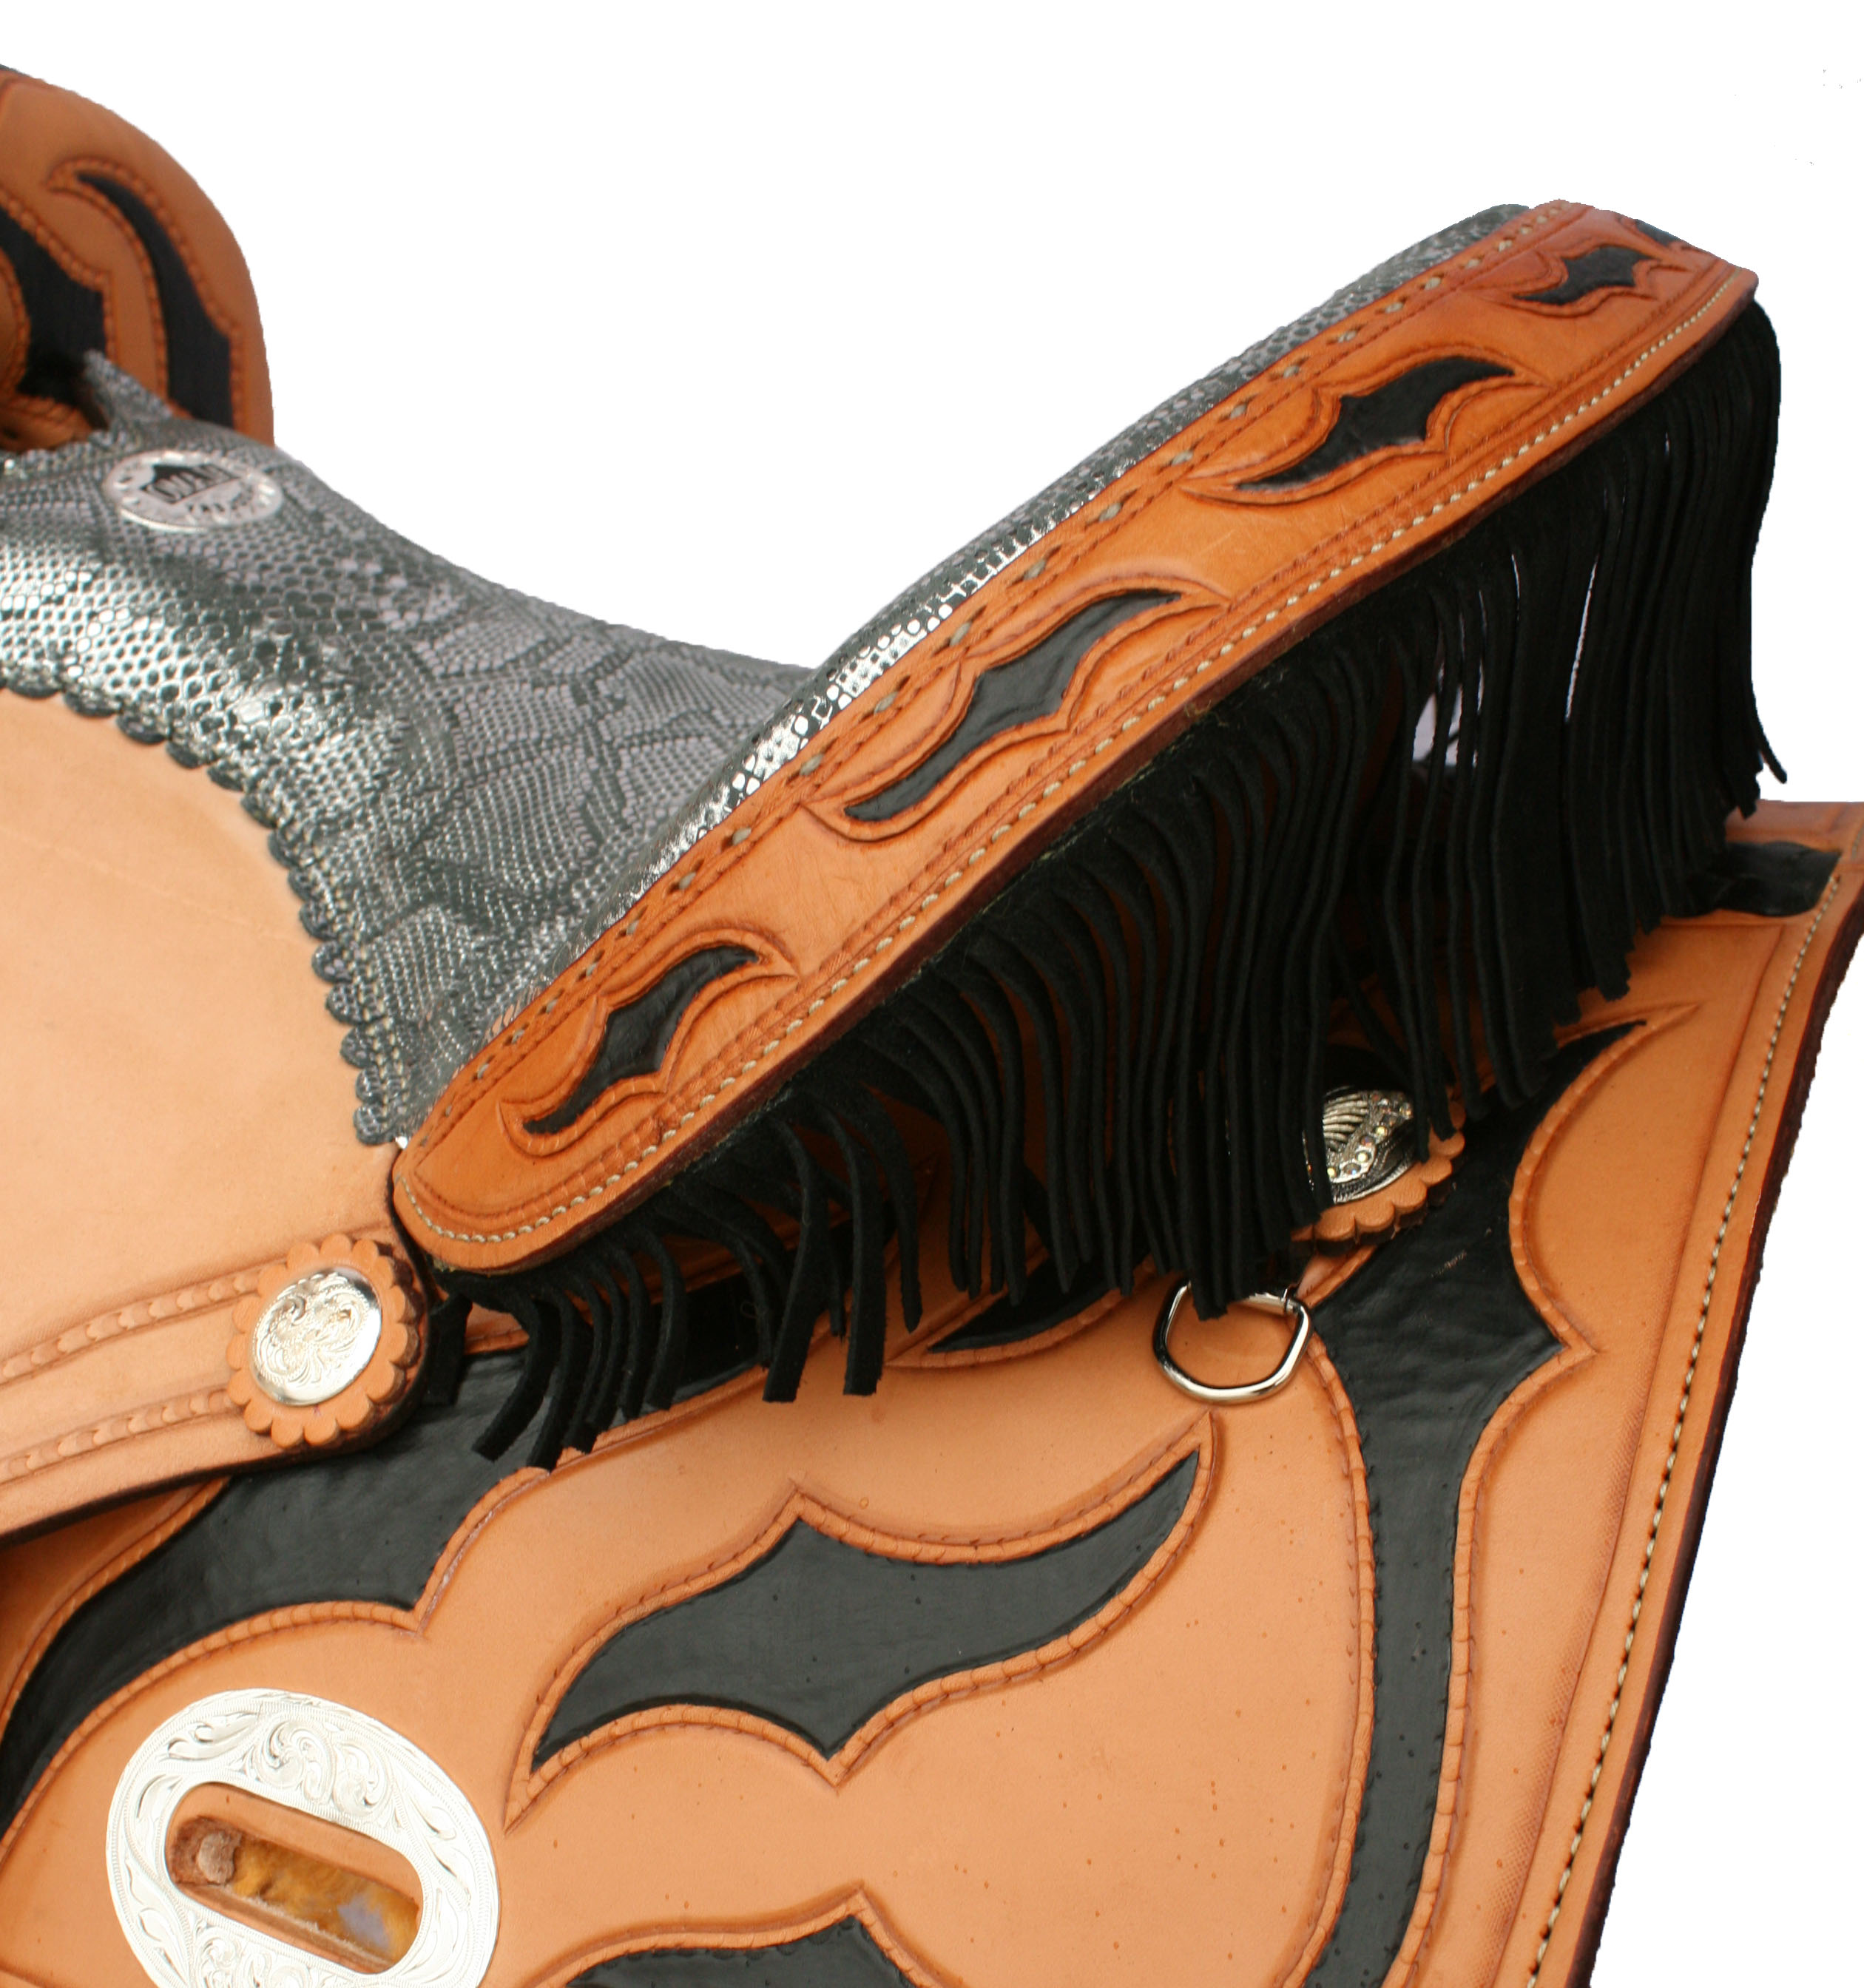 FRINGE BARREL SADDLE